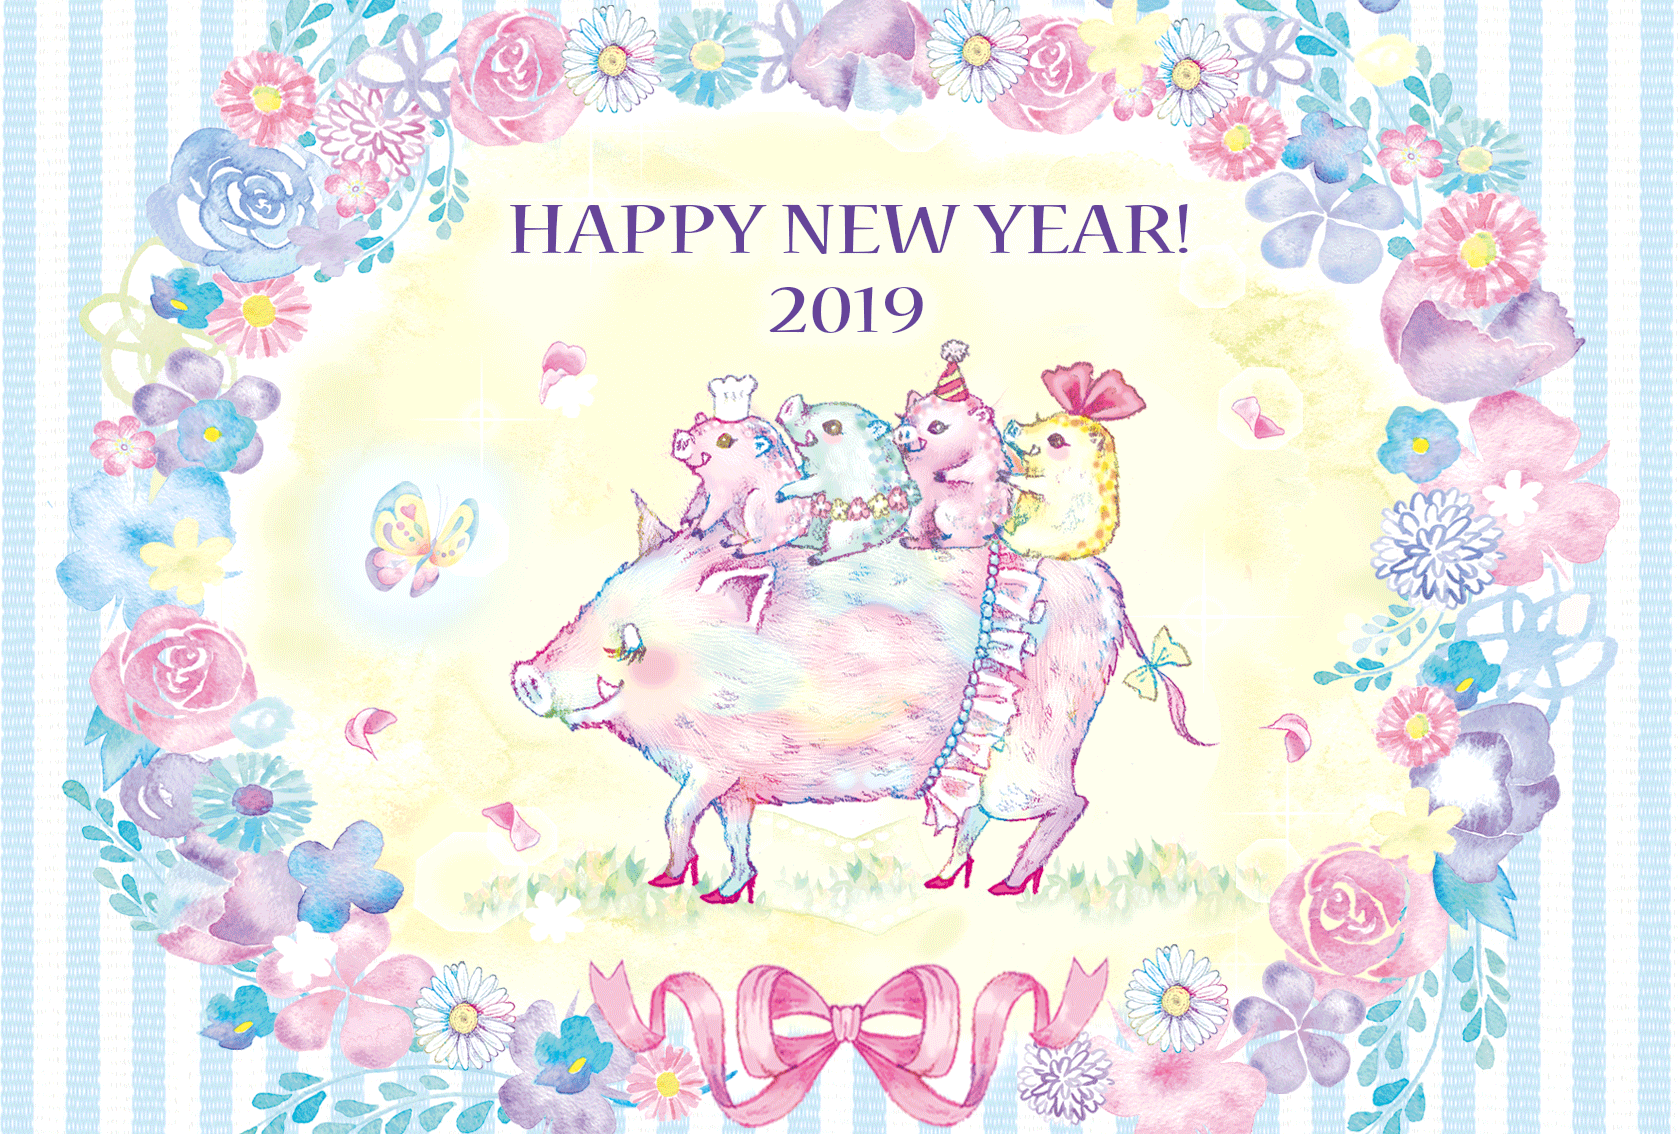 A HAPPY NEW YEAR 2019